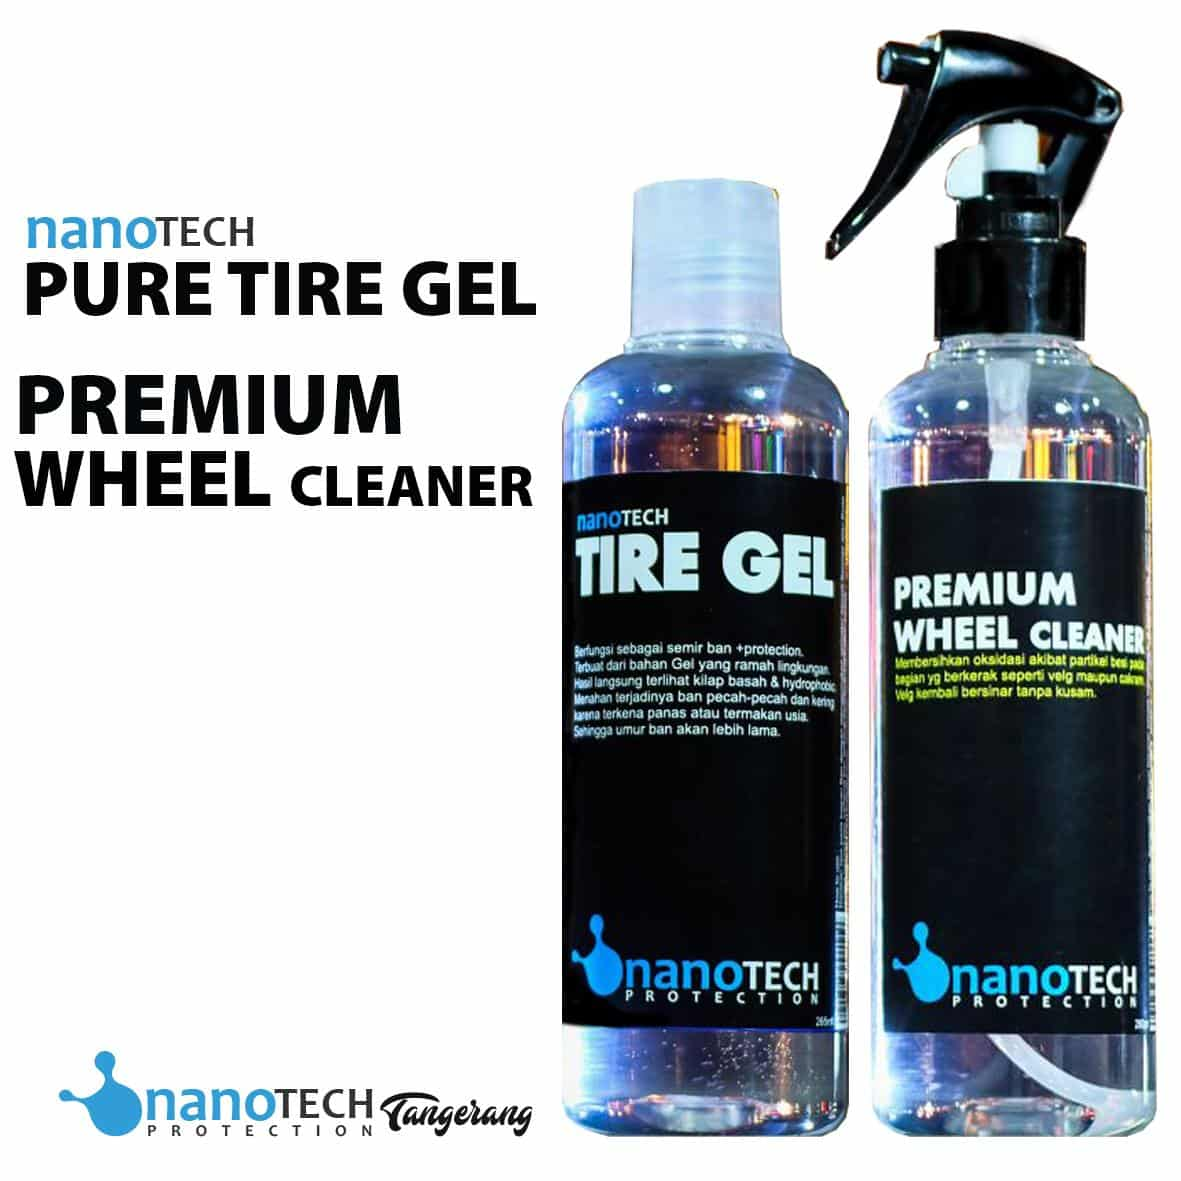 Nanotech-Pure-Tire-Gel